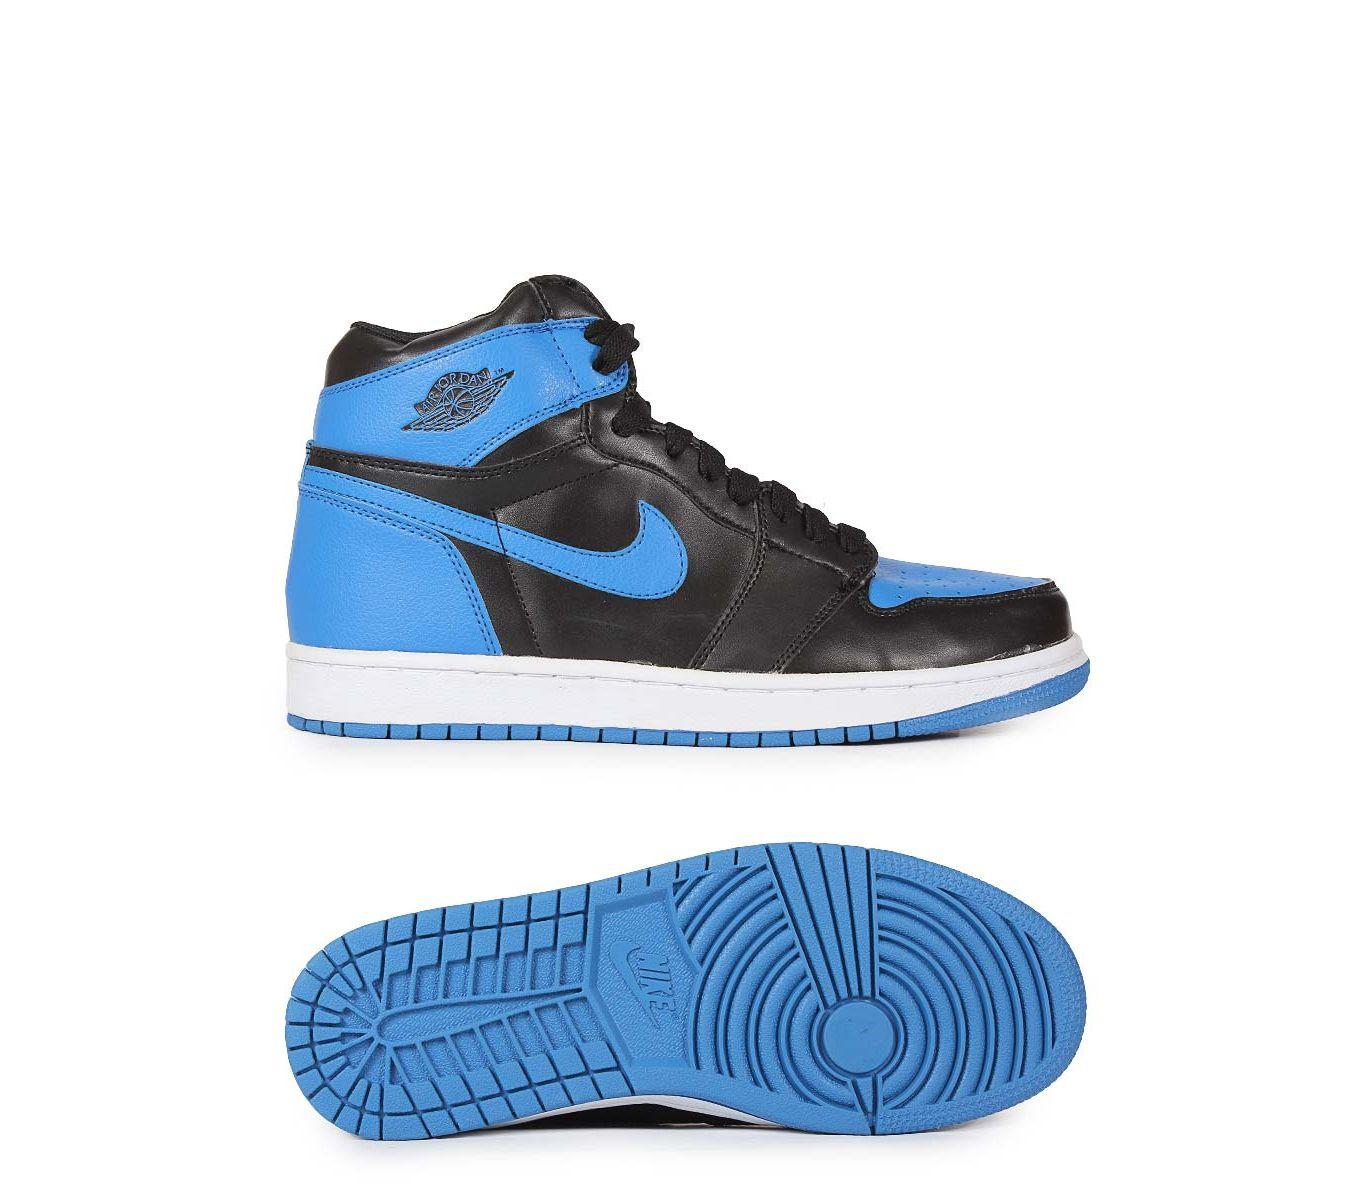 quality design cce02 6b4f9 Men s Fashion    Footwear    Lifestyle   Sports Shoes    Fasilite Air Jordan  1 Retro High OG - Blue   Black - Savers.pk - Everything you are looking for!